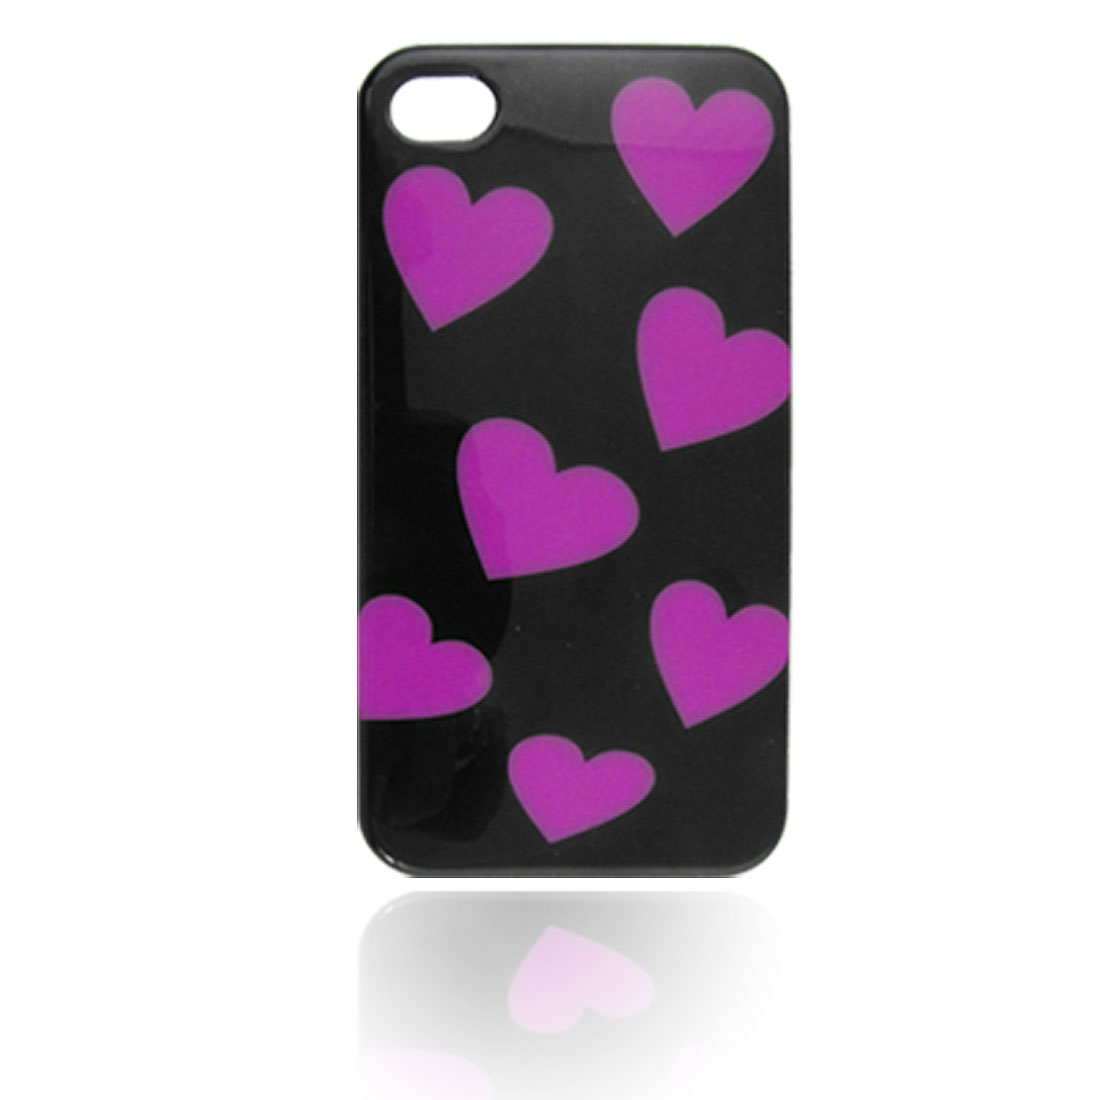 Fuchsia Heart Black Hard Plastic IMD Back Case Cover for iPhone 4 4G